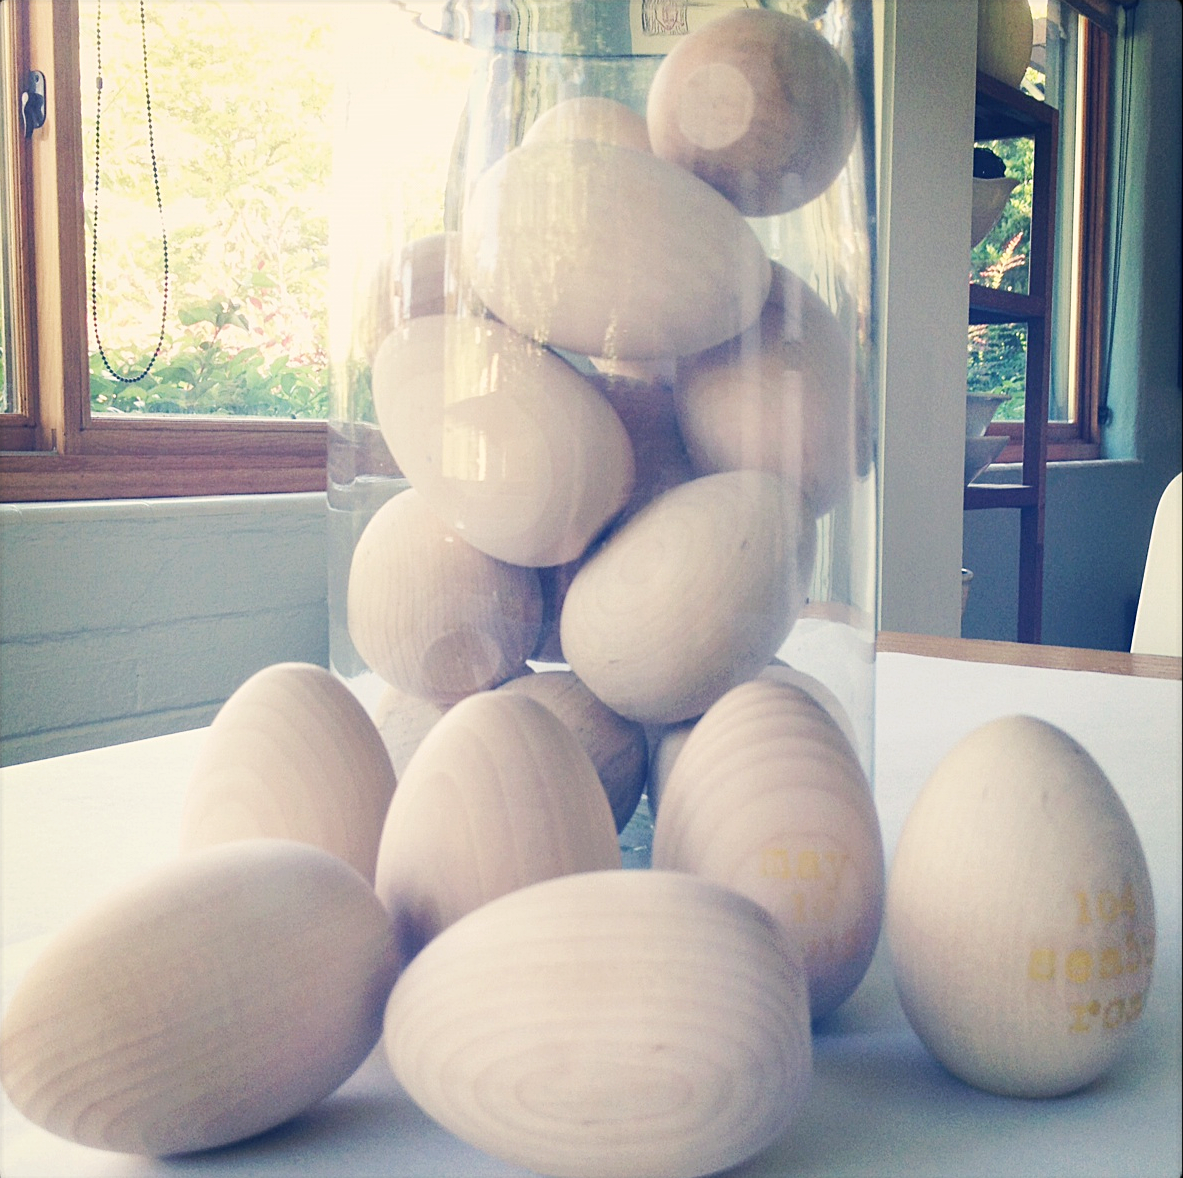 wooden keepsake eggs personalized by indobay handprinted modern textiles & home goods